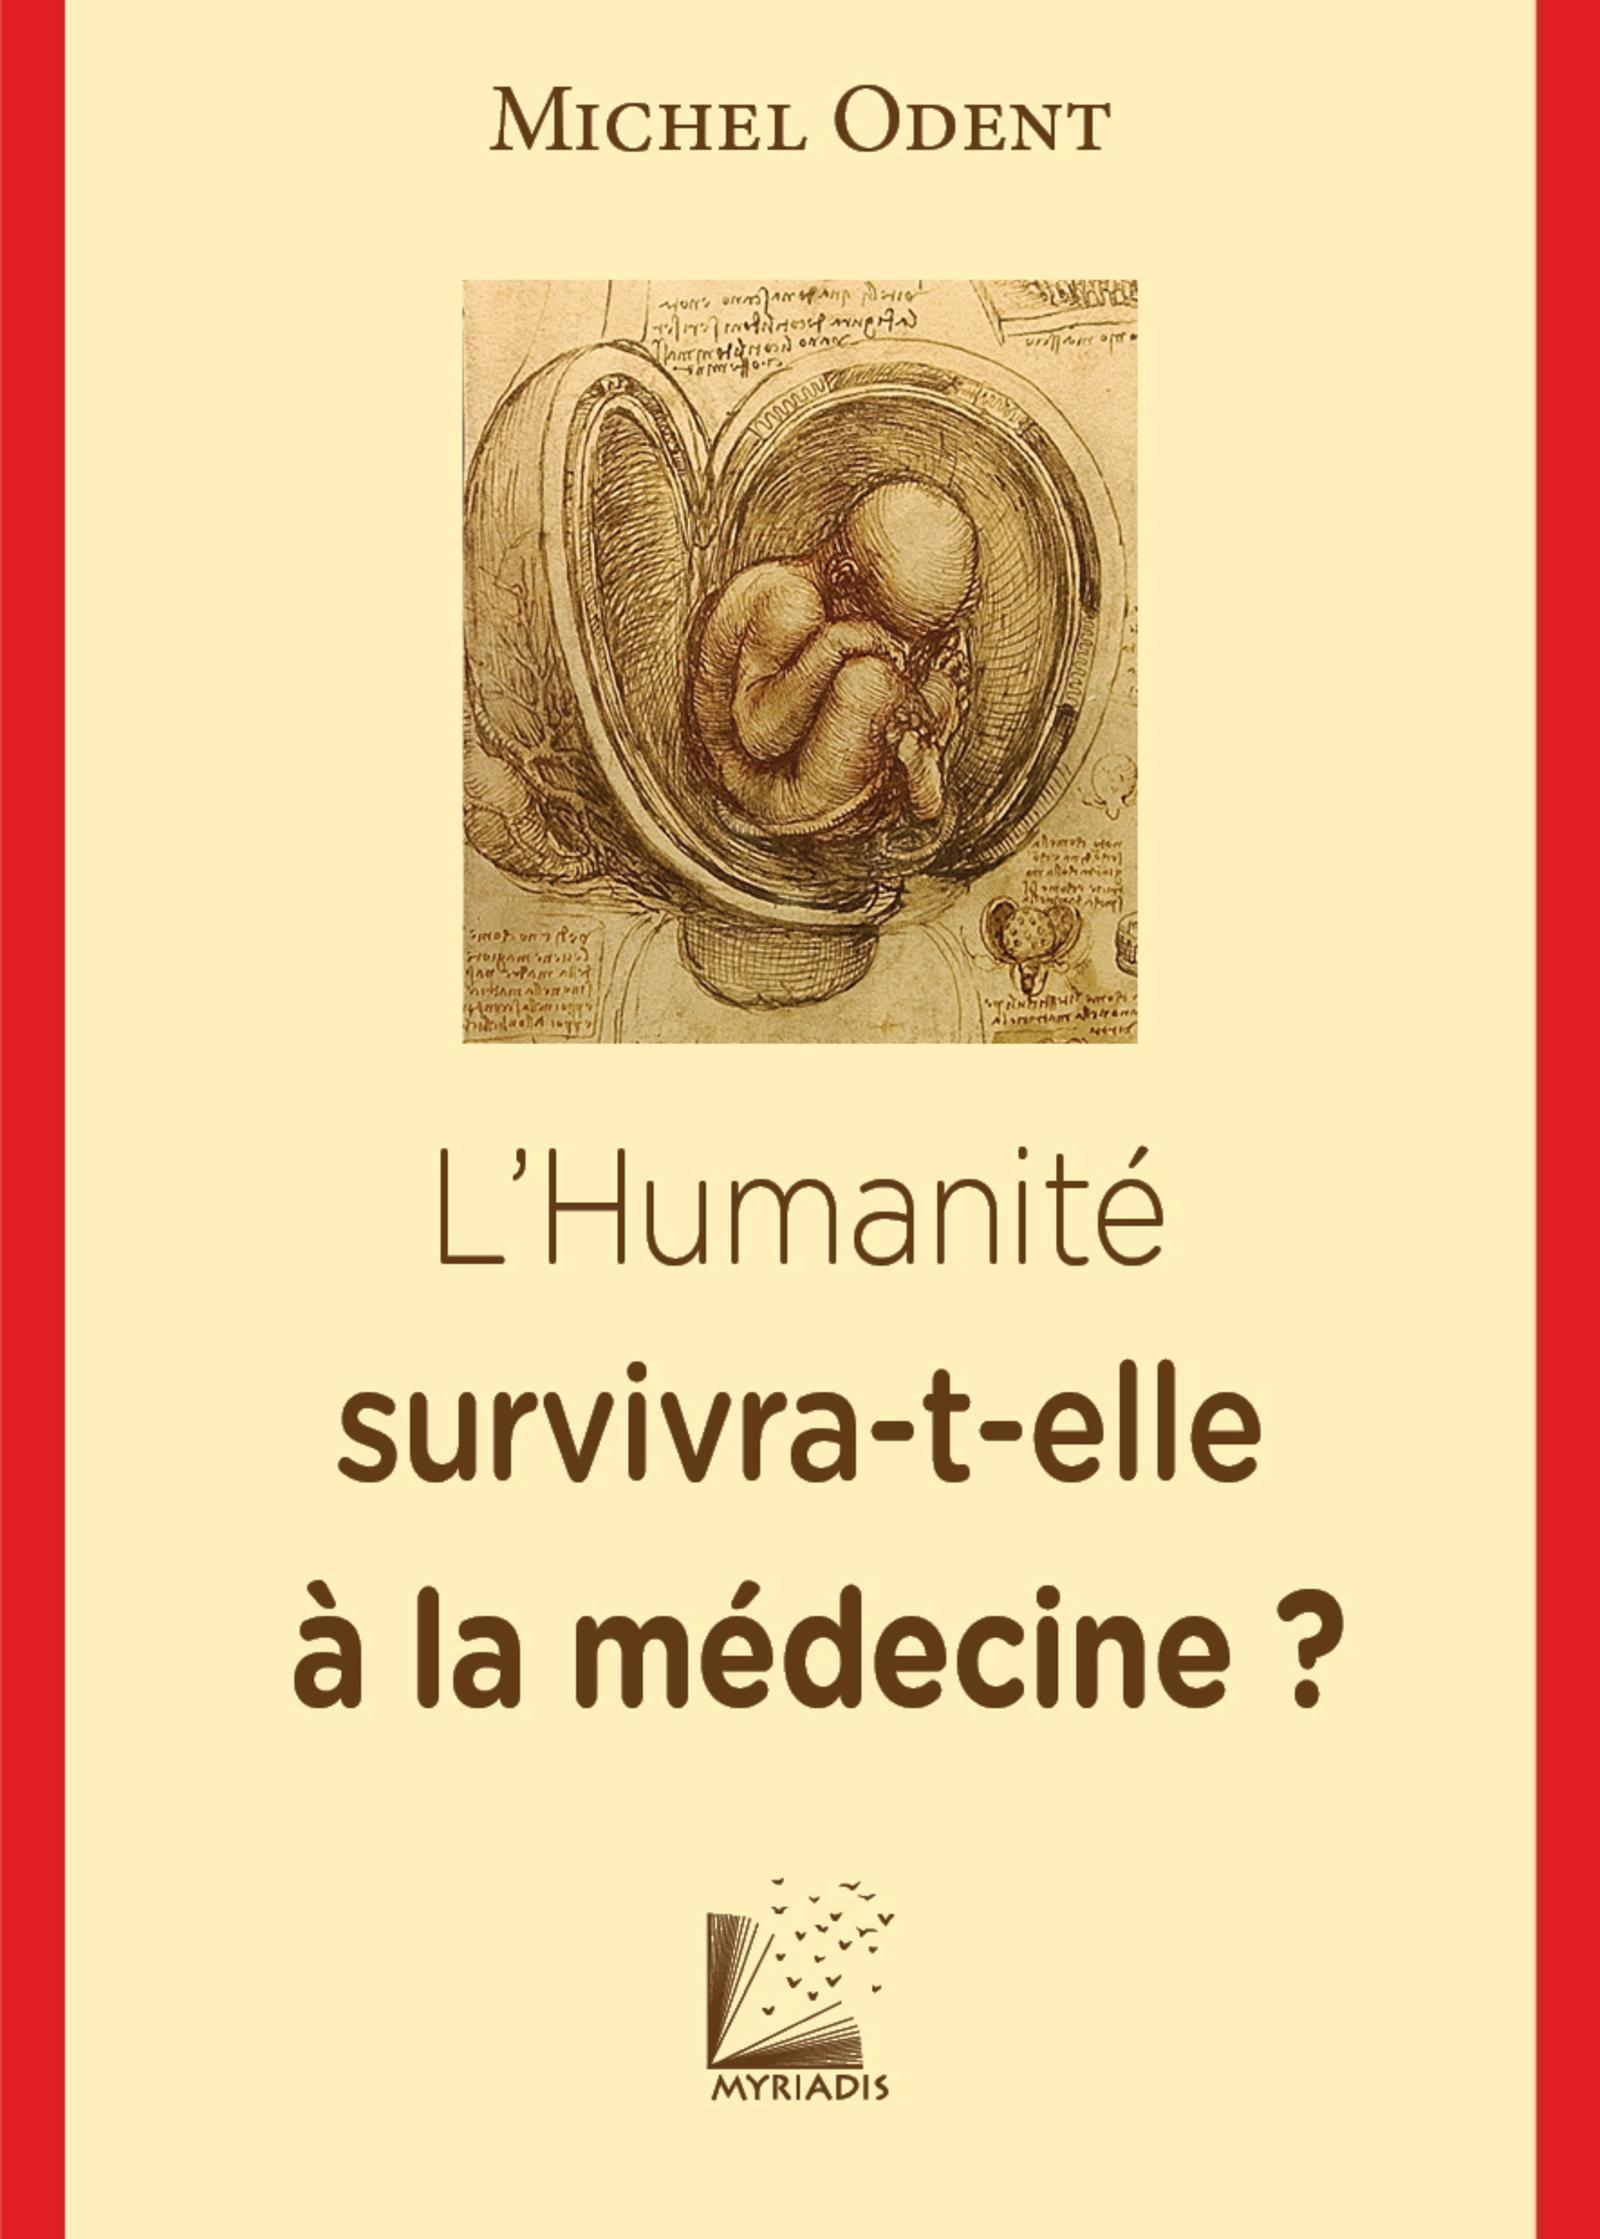 L HUMANITE SURVIVRA T ELLE A LA MEDECINE